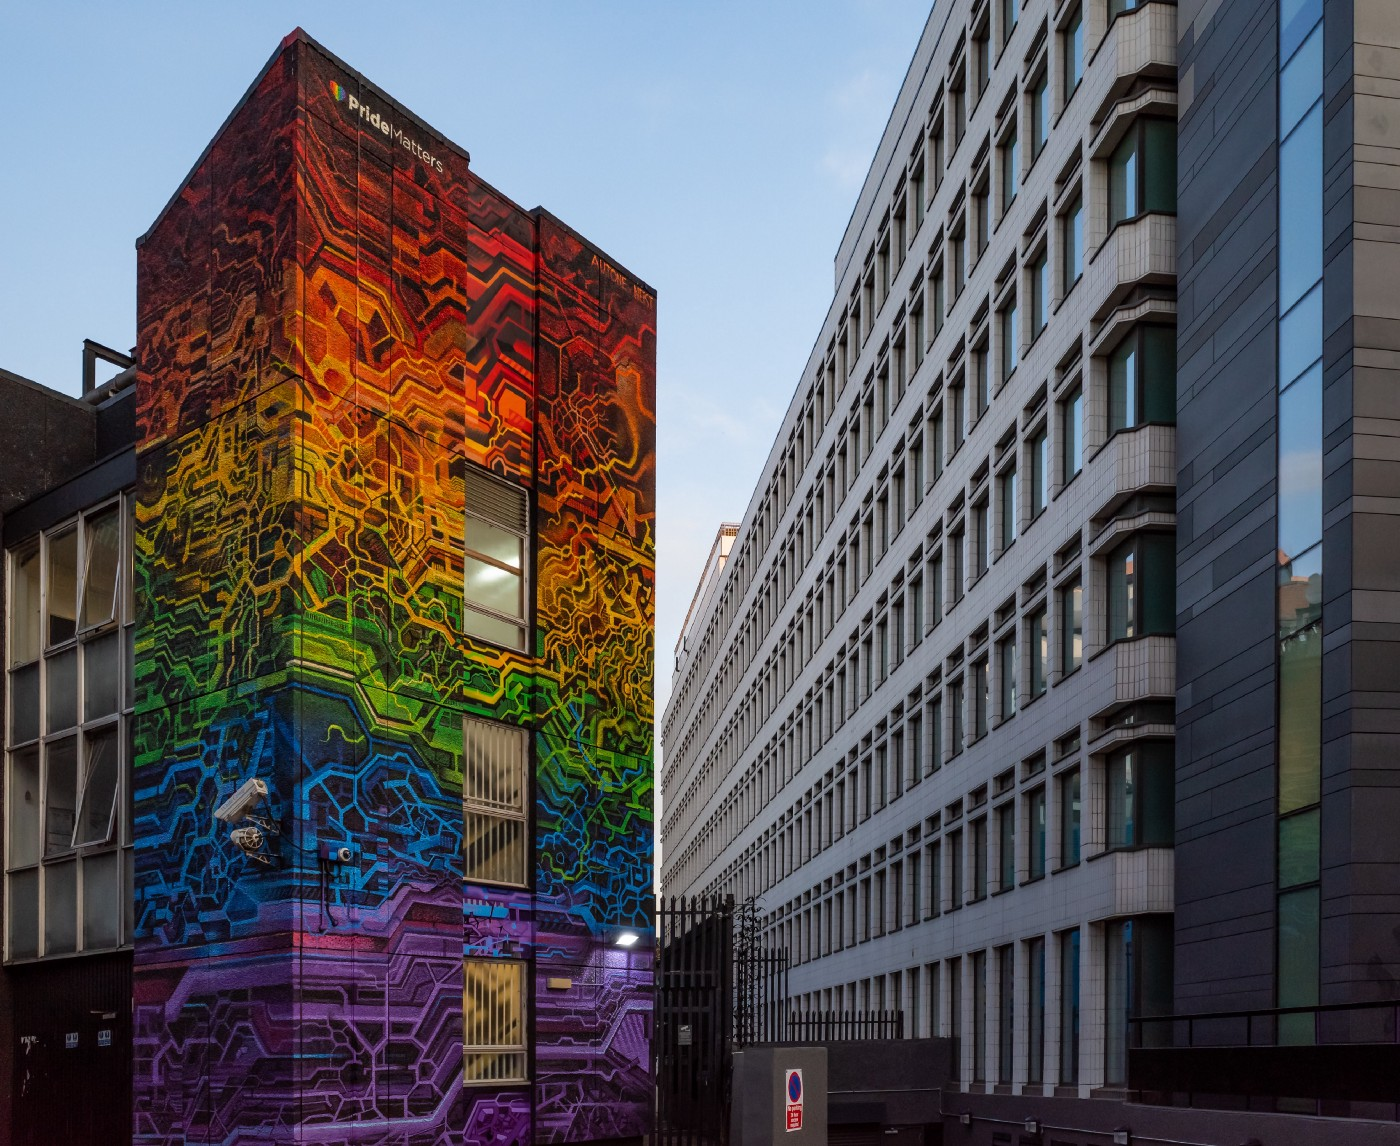 """Rainbow colored """"Pride Matters"""" mural on the side of a building in a city"""